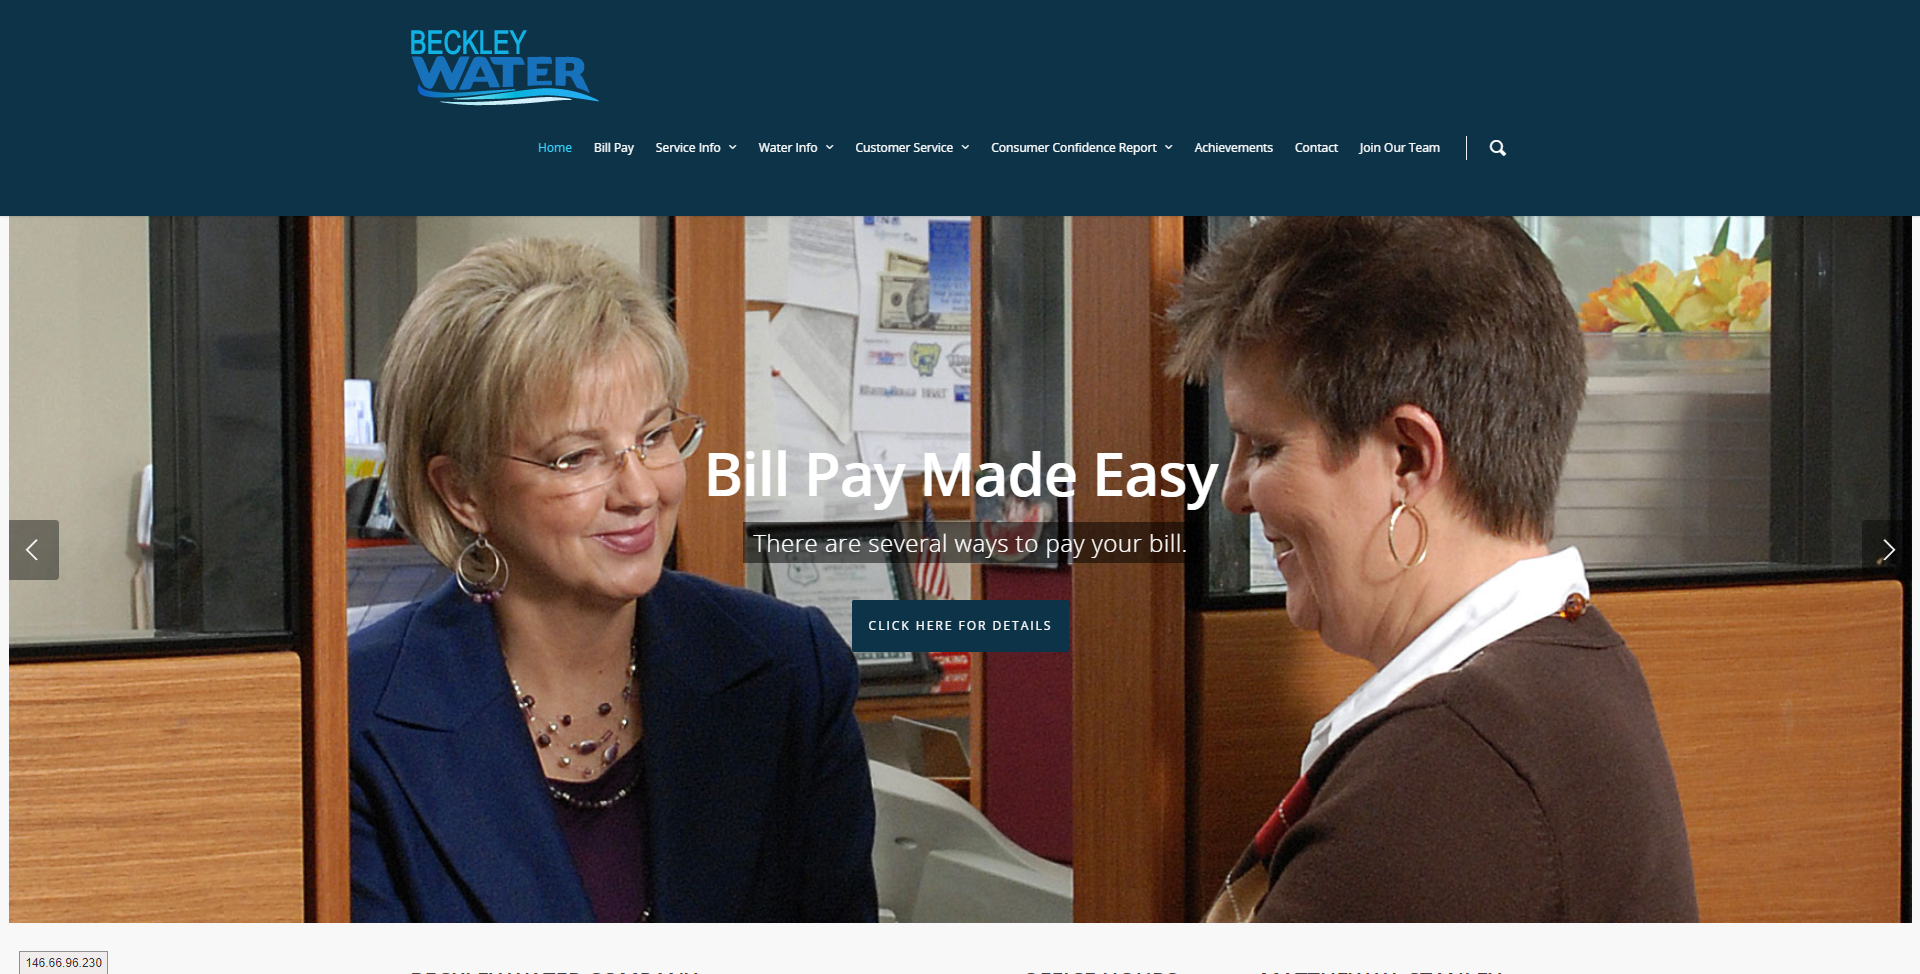 Beckley Water Company | The Official Water Company of Beckley